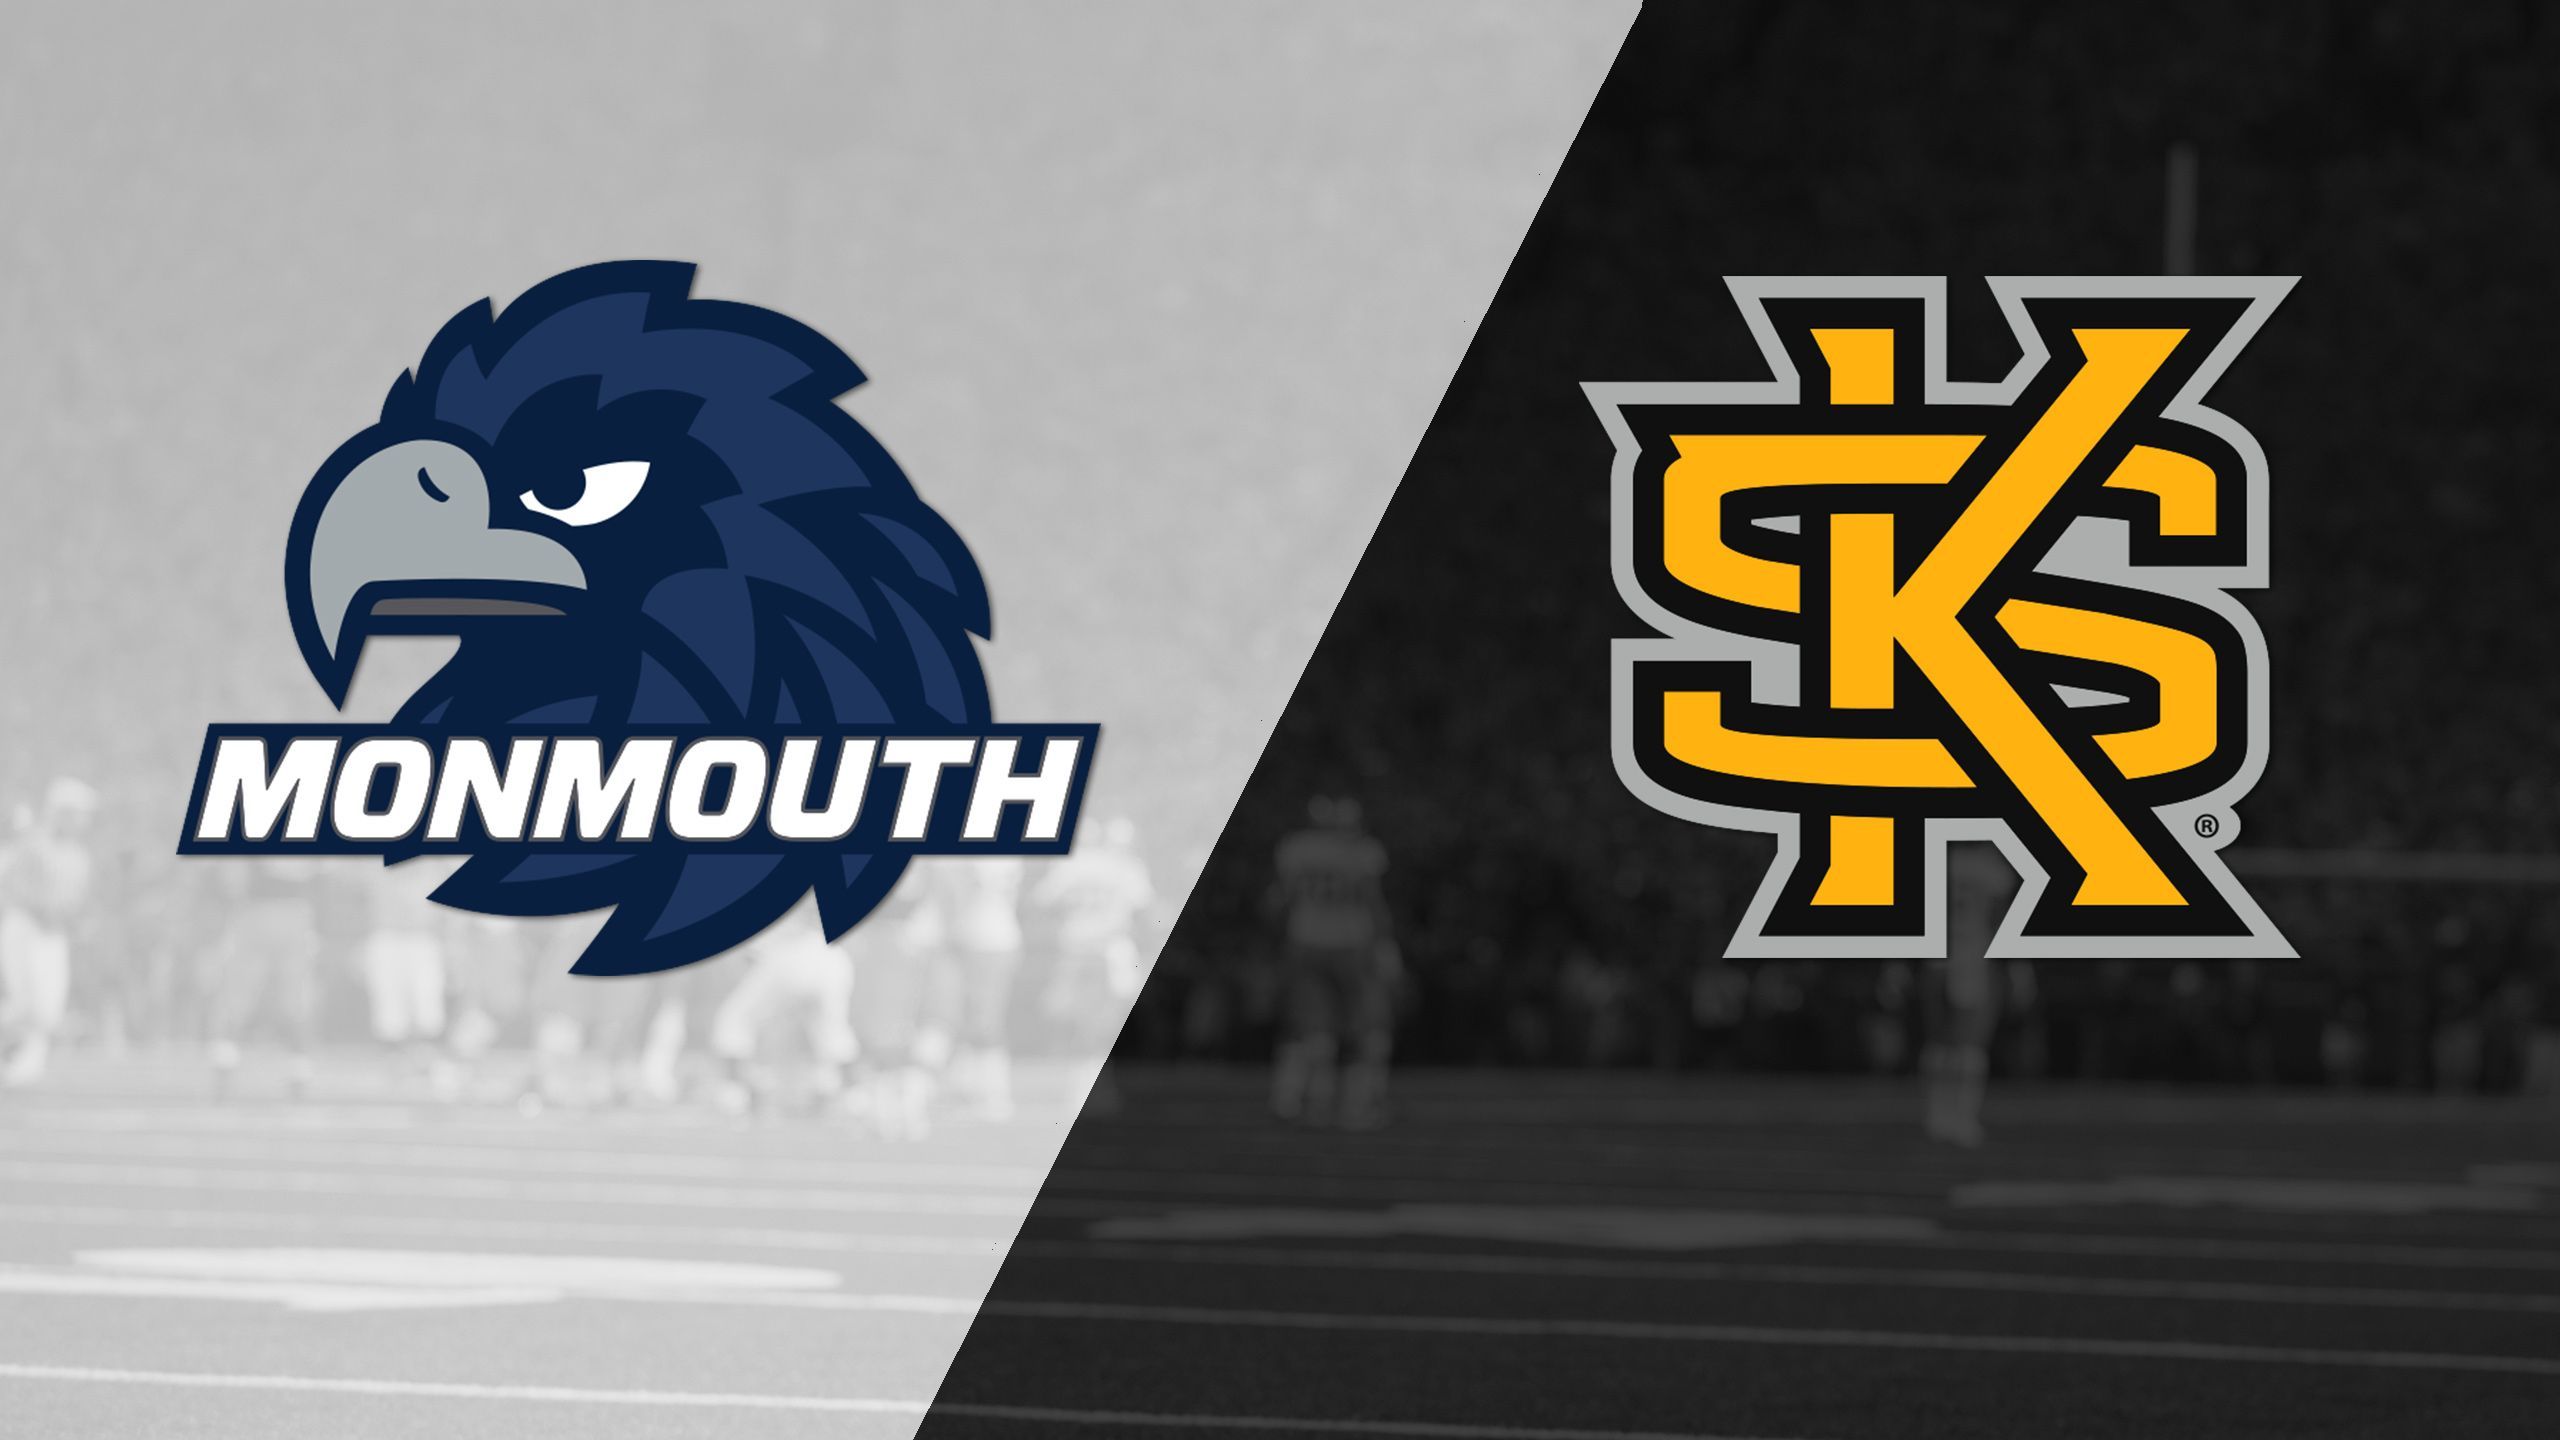 Watchespn Is Now Available In The Espn App Monmouth Vs